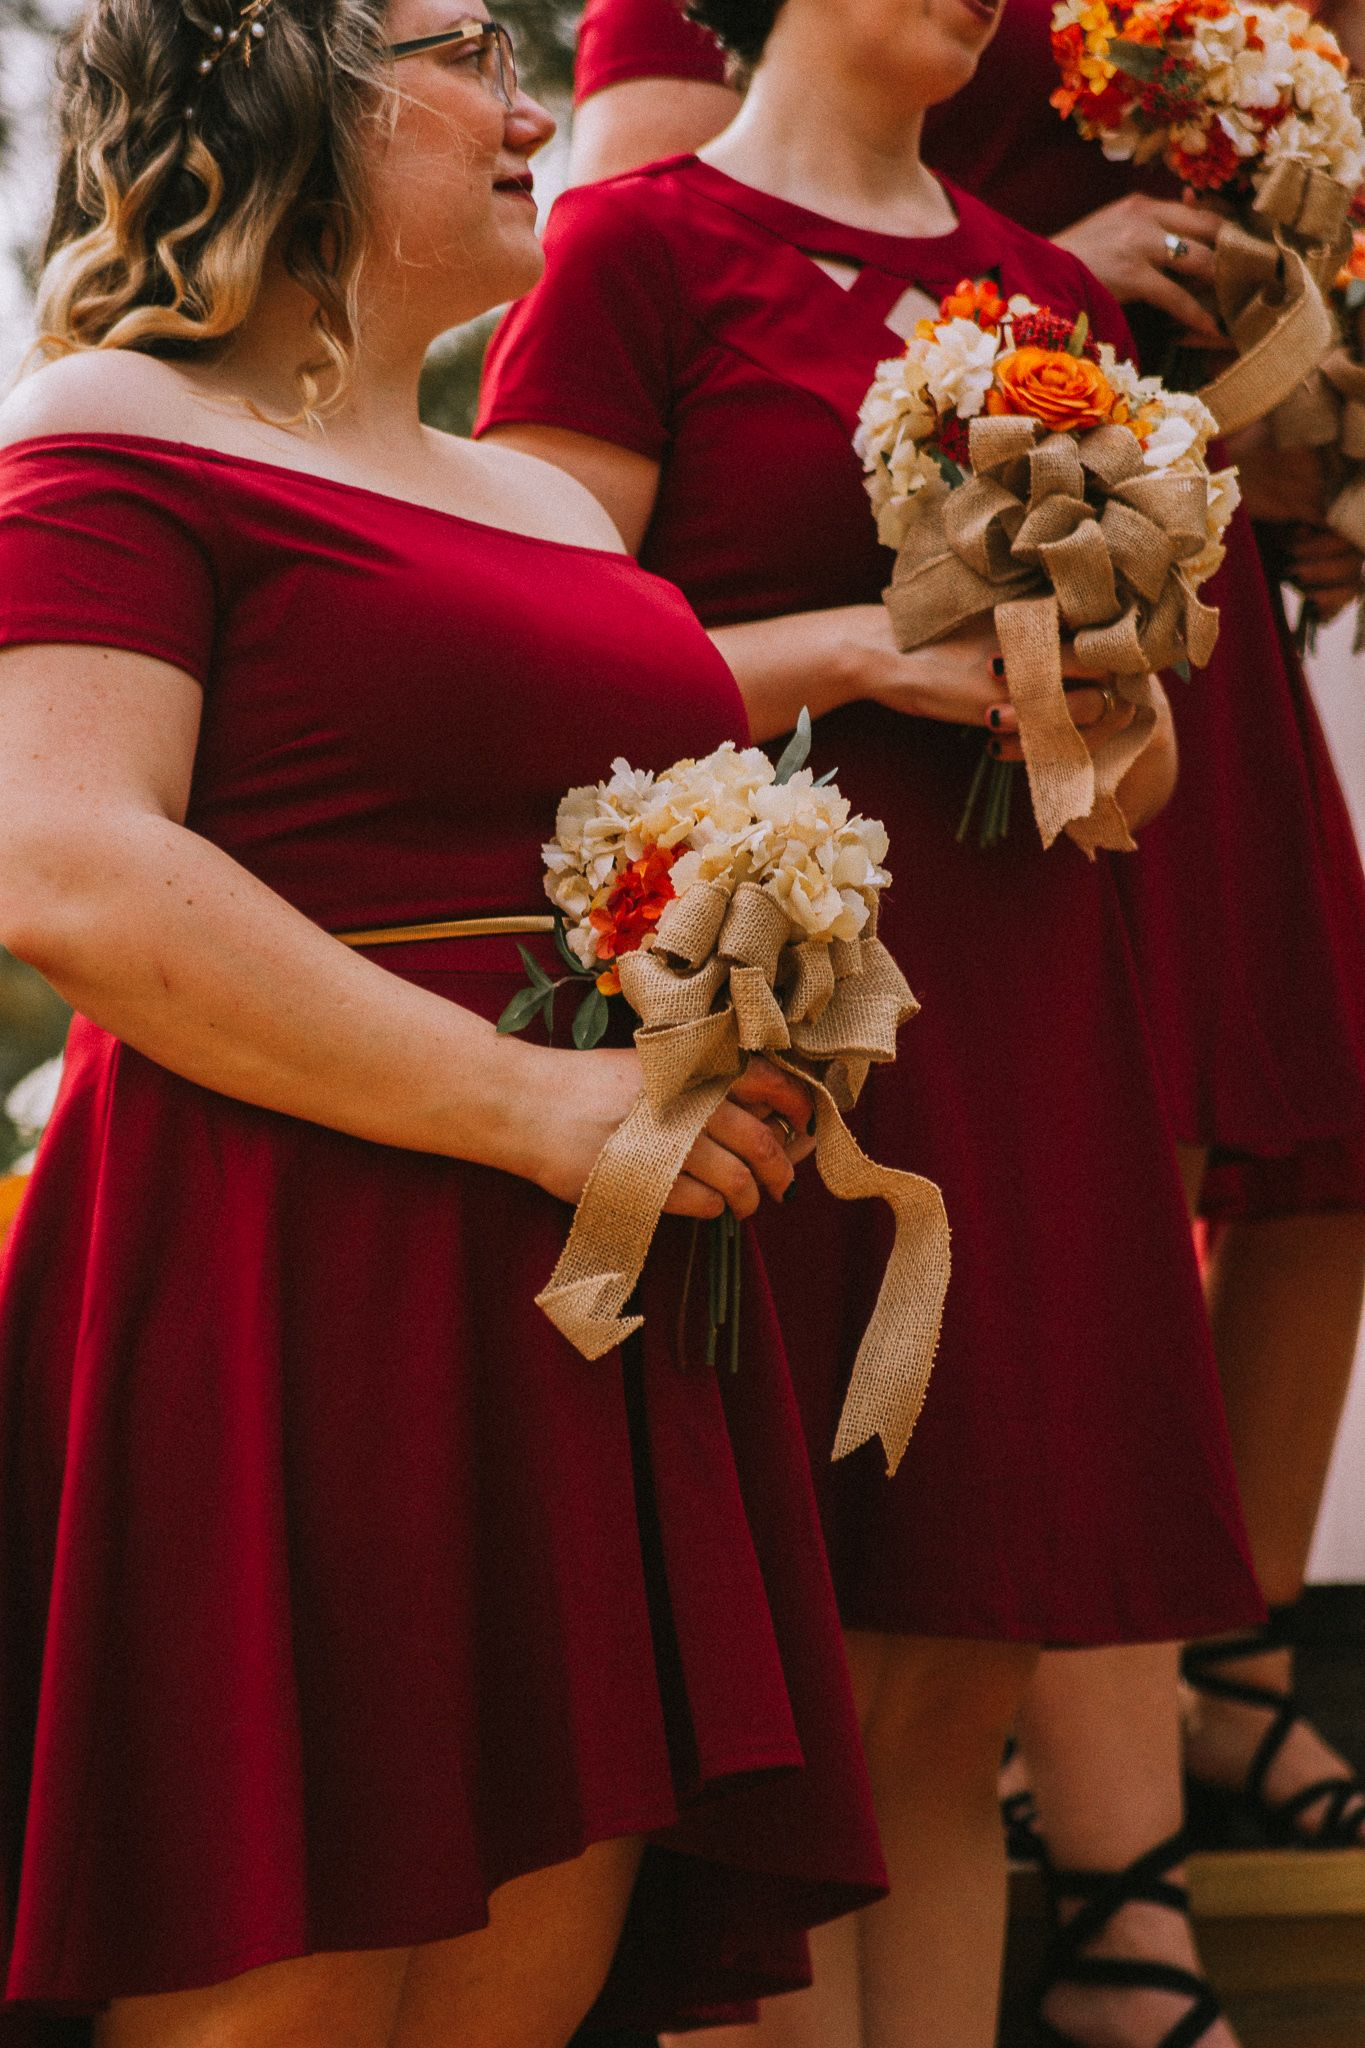 bridesmaids at an intimate wedding holding bouquets